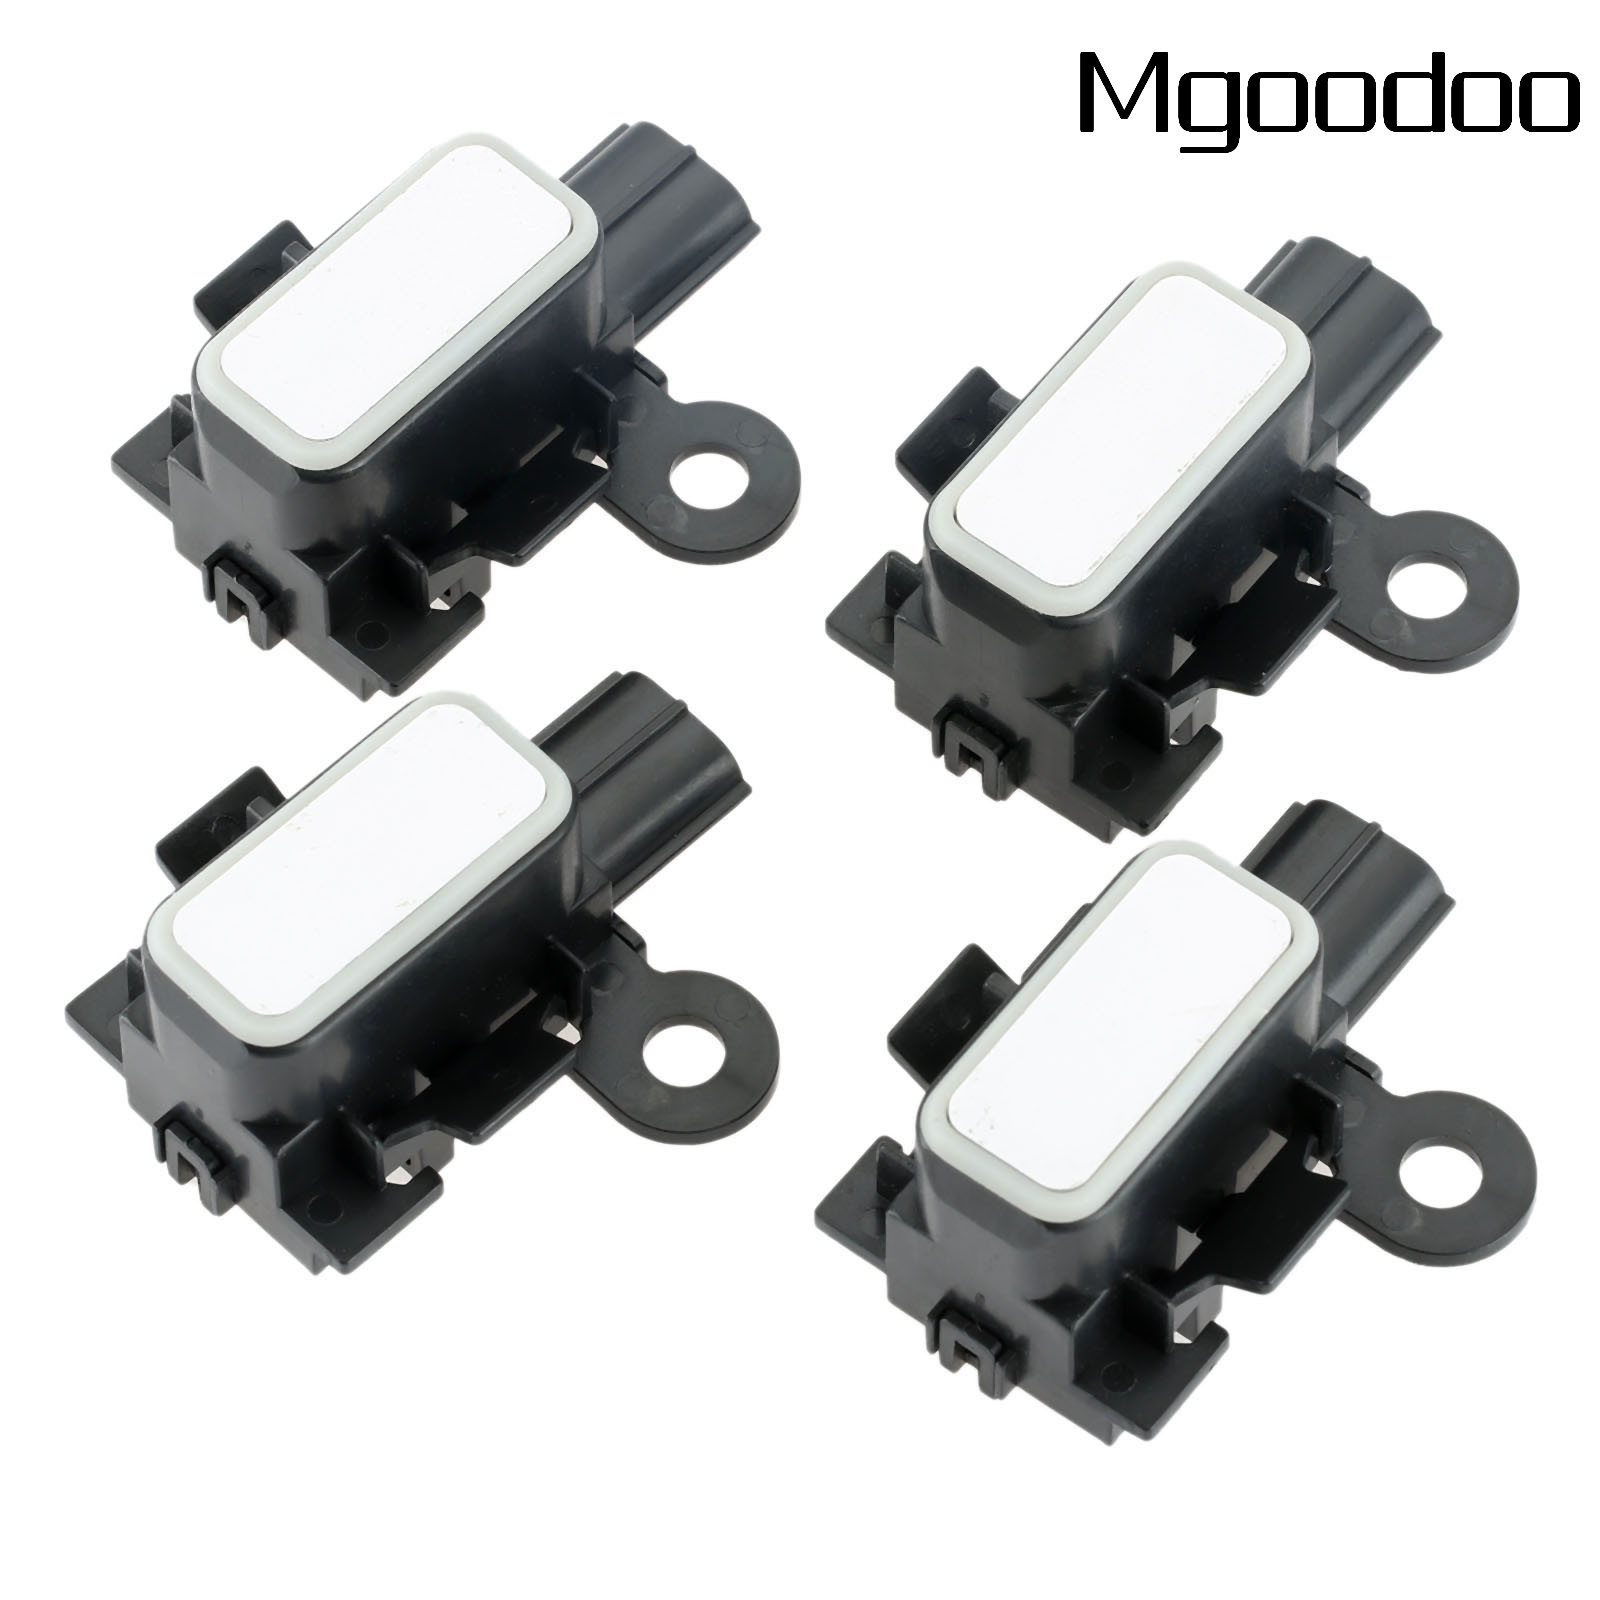 4x PDC Ultrasonic Parking Radar Sensor For Lexus GS300 GS350 GS430 GS450h GS460 89341-44150-B2 89341-44150 Parktronic Sensor NEW 4pcs pdc new brand parking sensor 25994 cm10d ultrasonic fit nissan infiniti g20 fx50